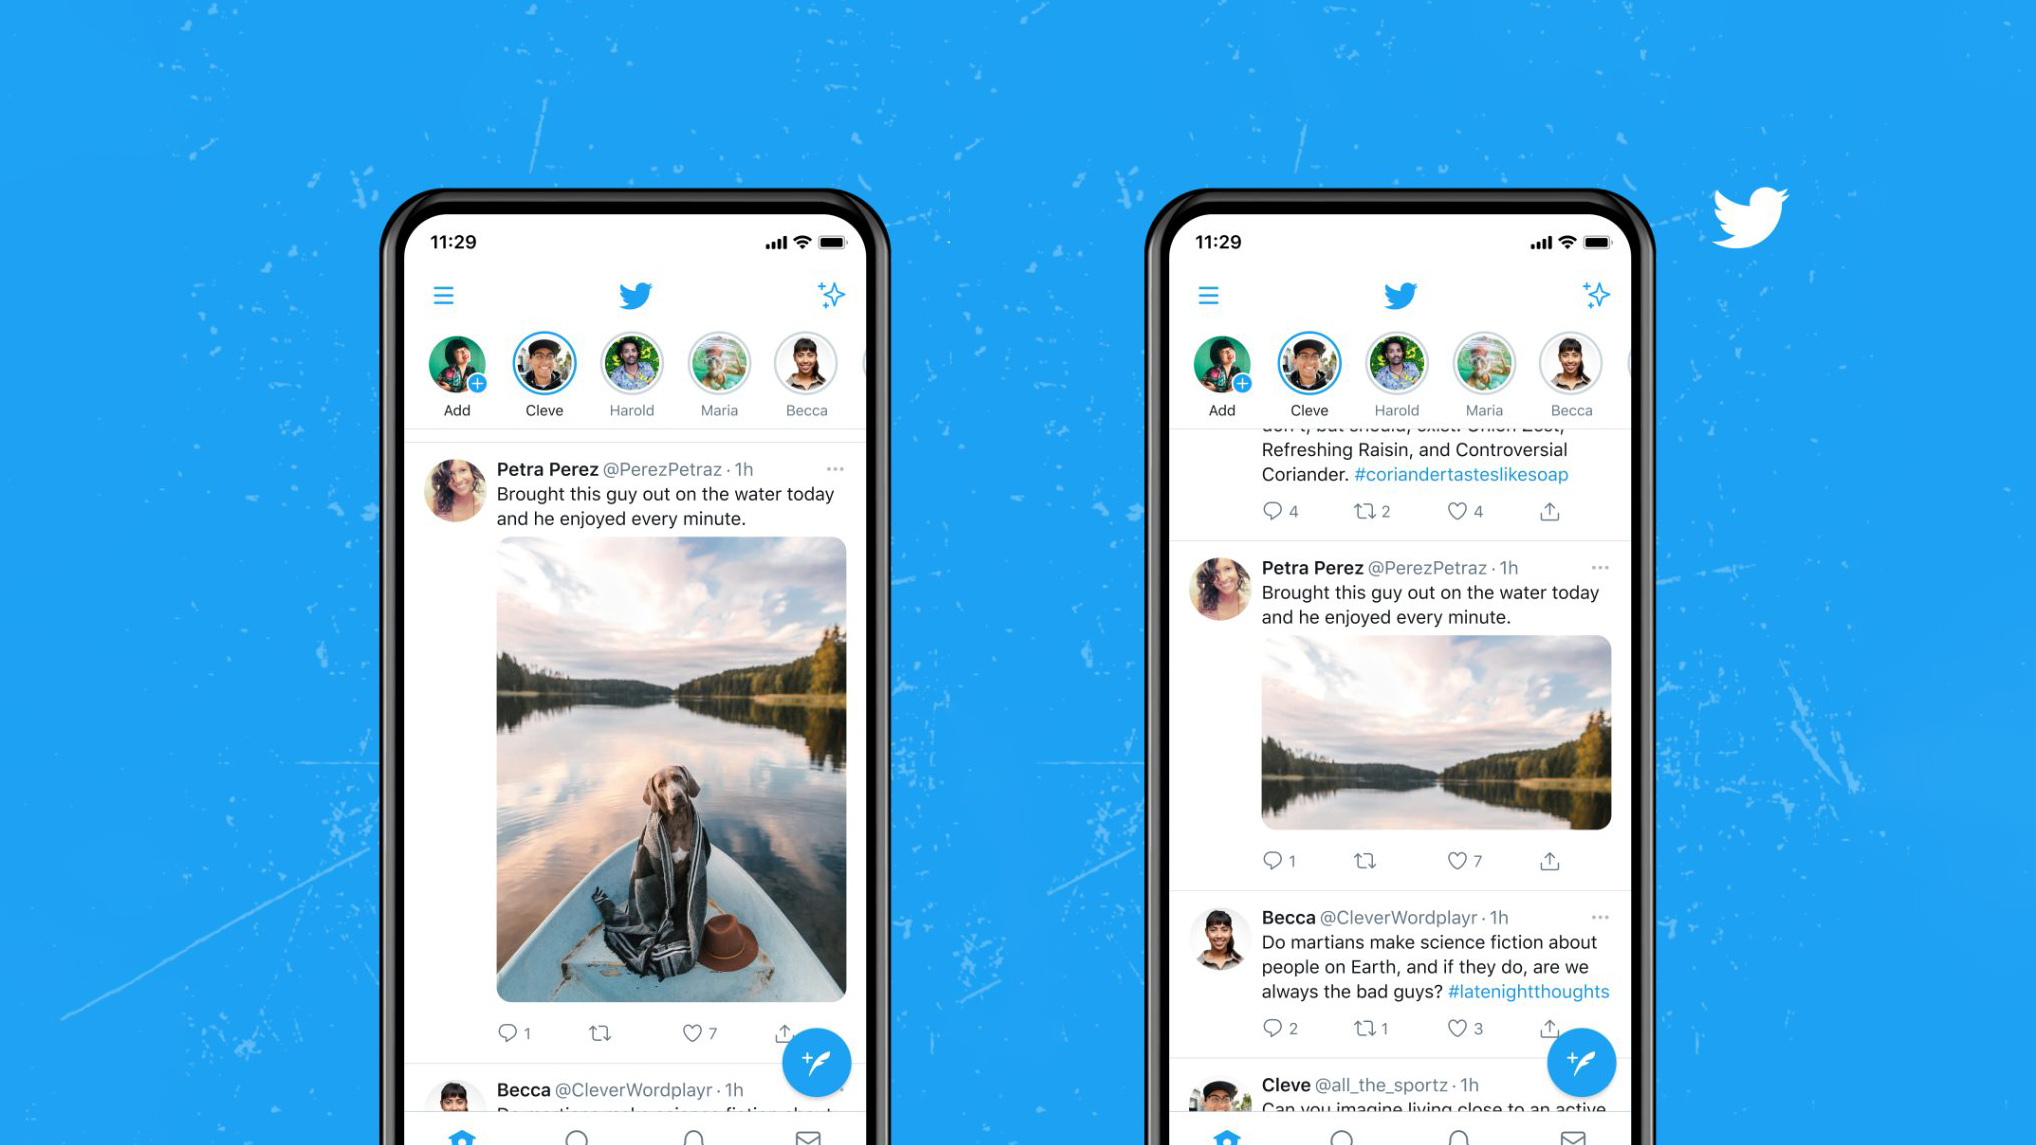 Twitter App for iOS Now Supports Larger Image Previews in Timeline